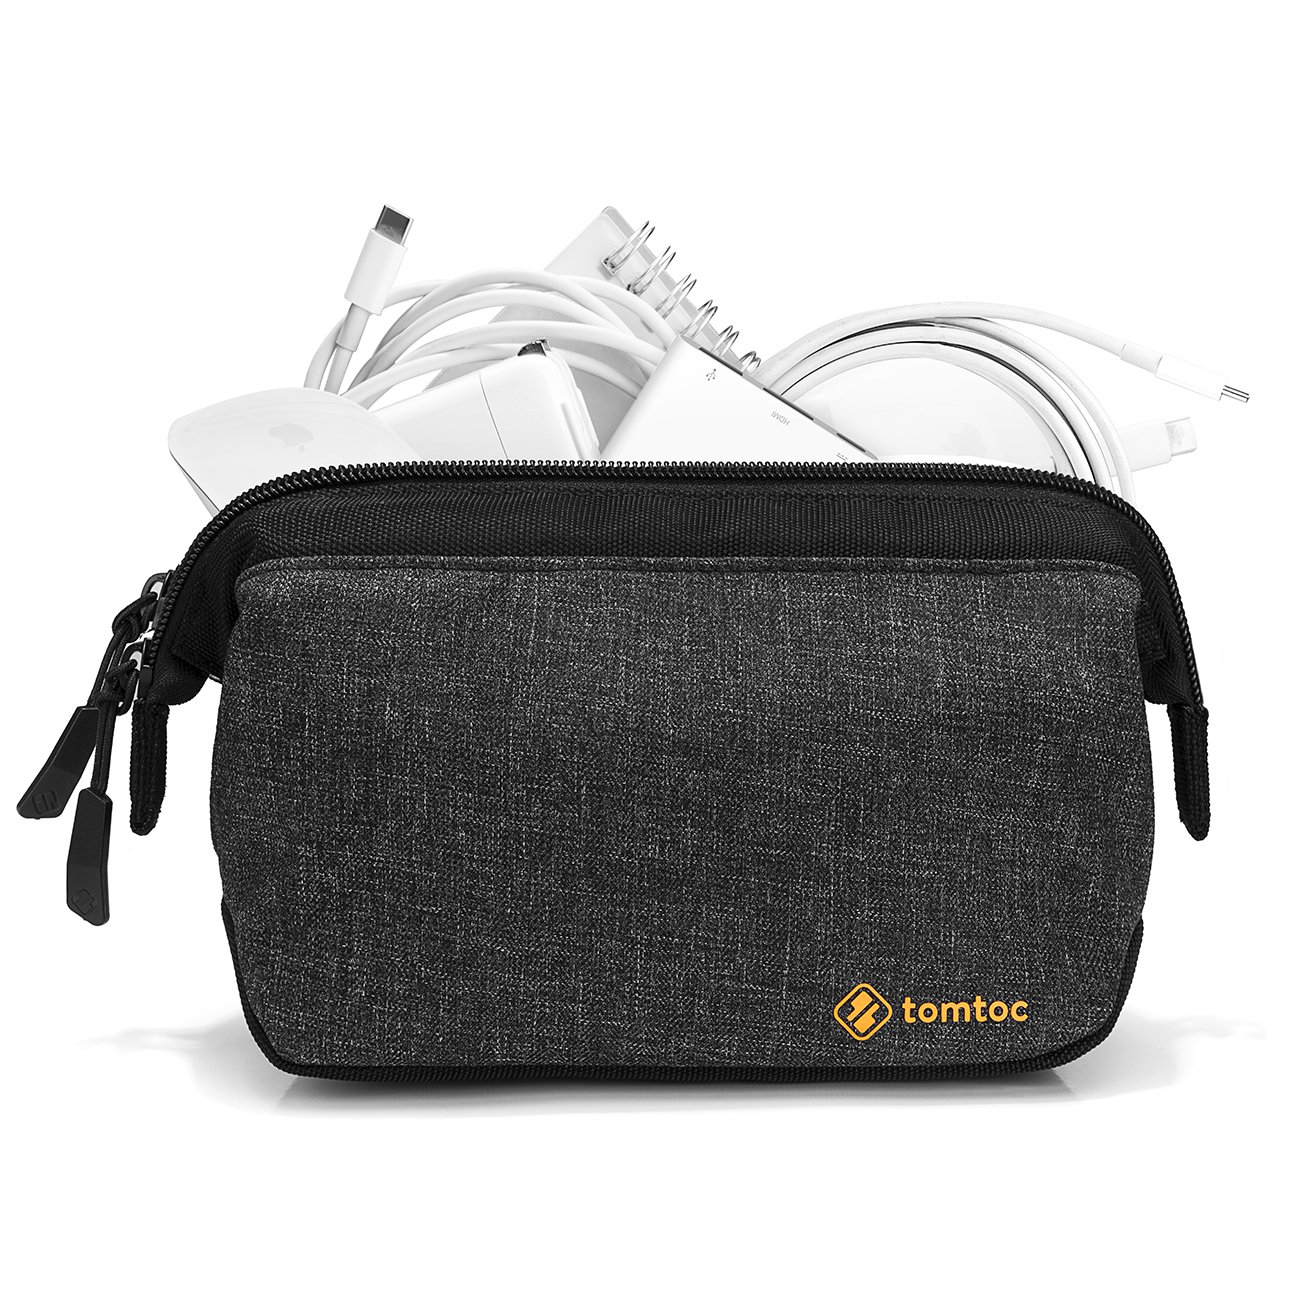 Tomtoc Laptop Accessory Pouch Bag Organizer, Electronics Gadgets Speaker Camera Storage Case, Waterproof Travel Toiletry Bag and Makeup Cosmetics Bag, Healthcare Kit for Men and Women